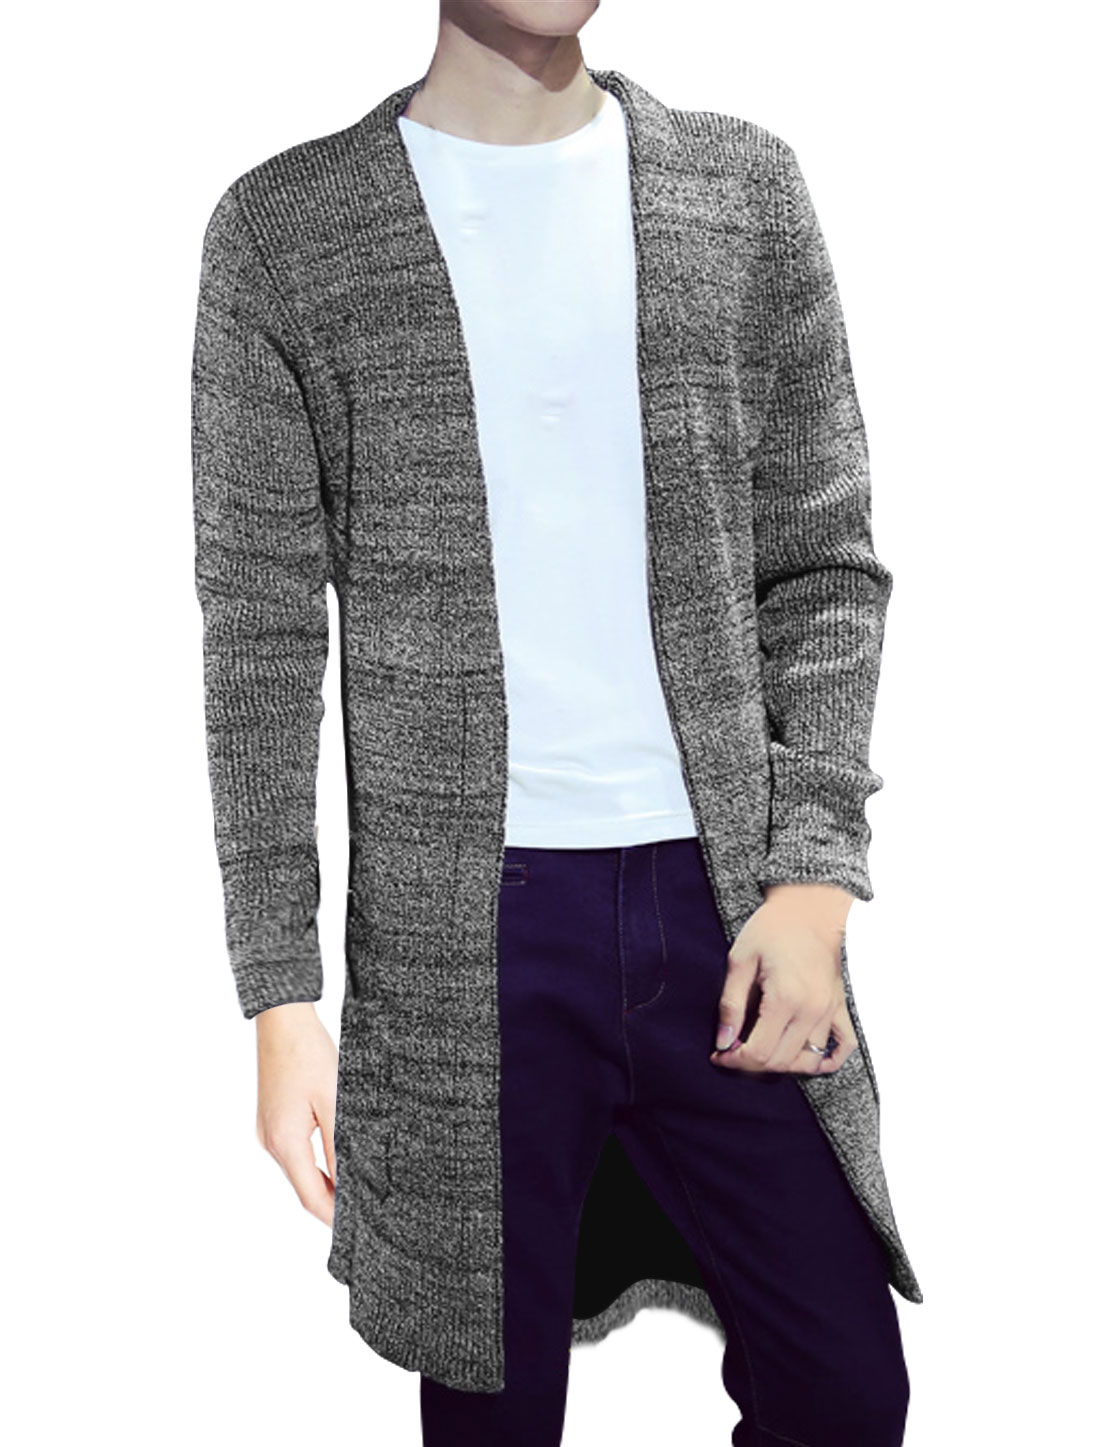 Men Long Sleeves Two Pockets Front Opening Sweater Cardigan Gray M